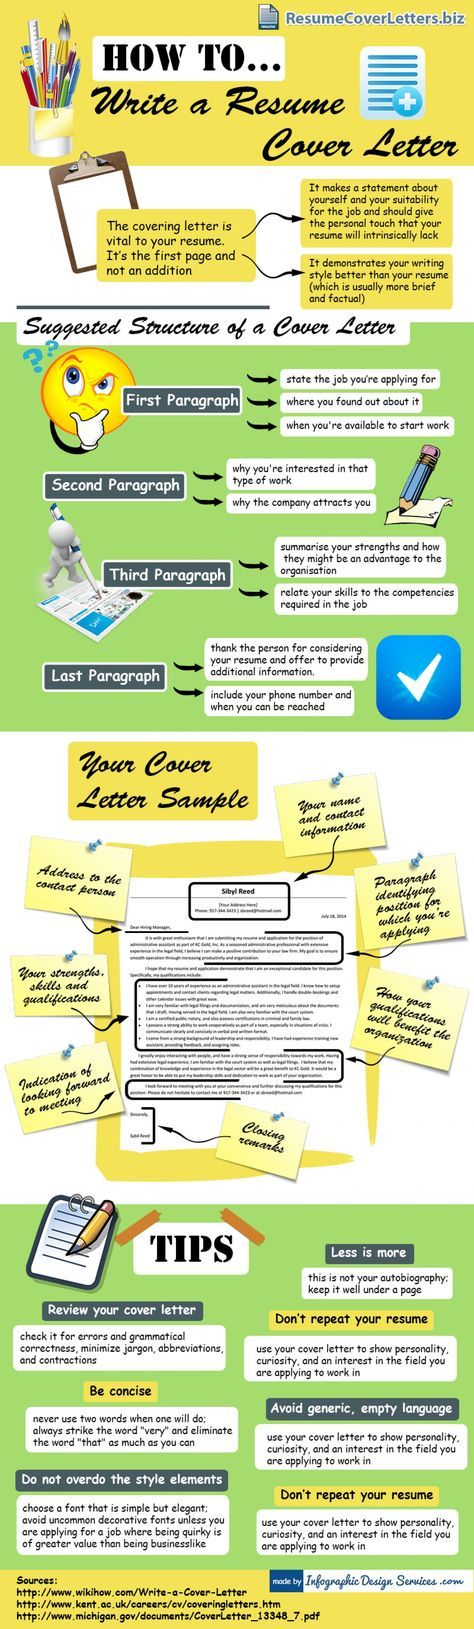 Best 20+ Resume writing tips ideas on Pinterest Cv writing tips - generic resume